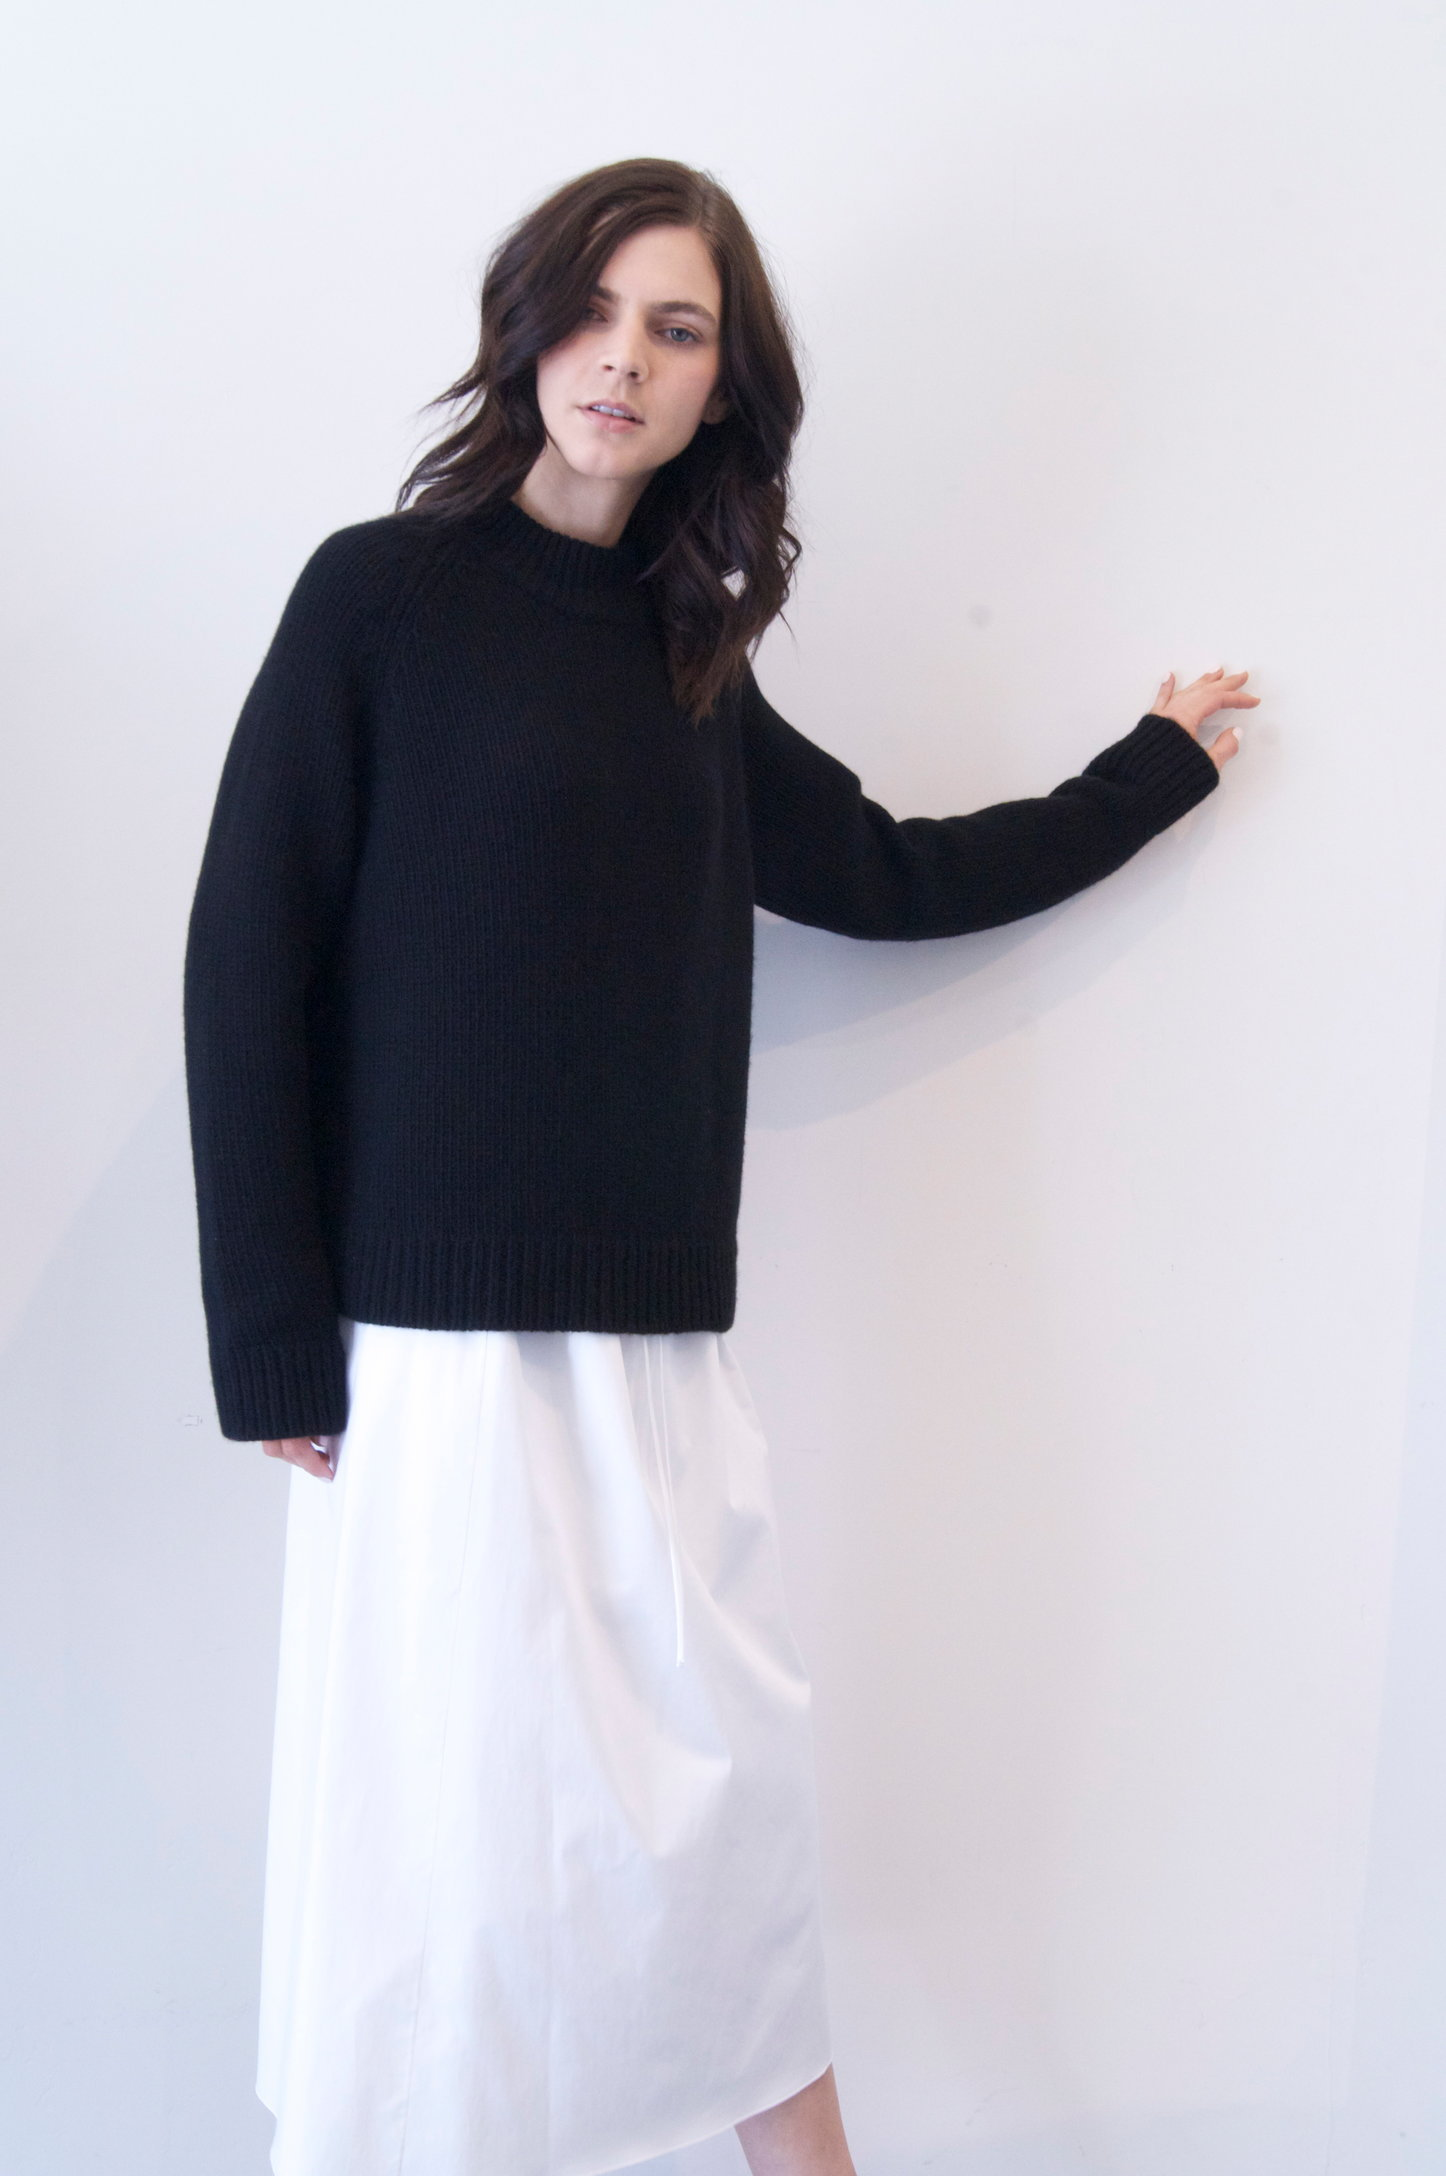 siphin top in black cashmere   1590.00